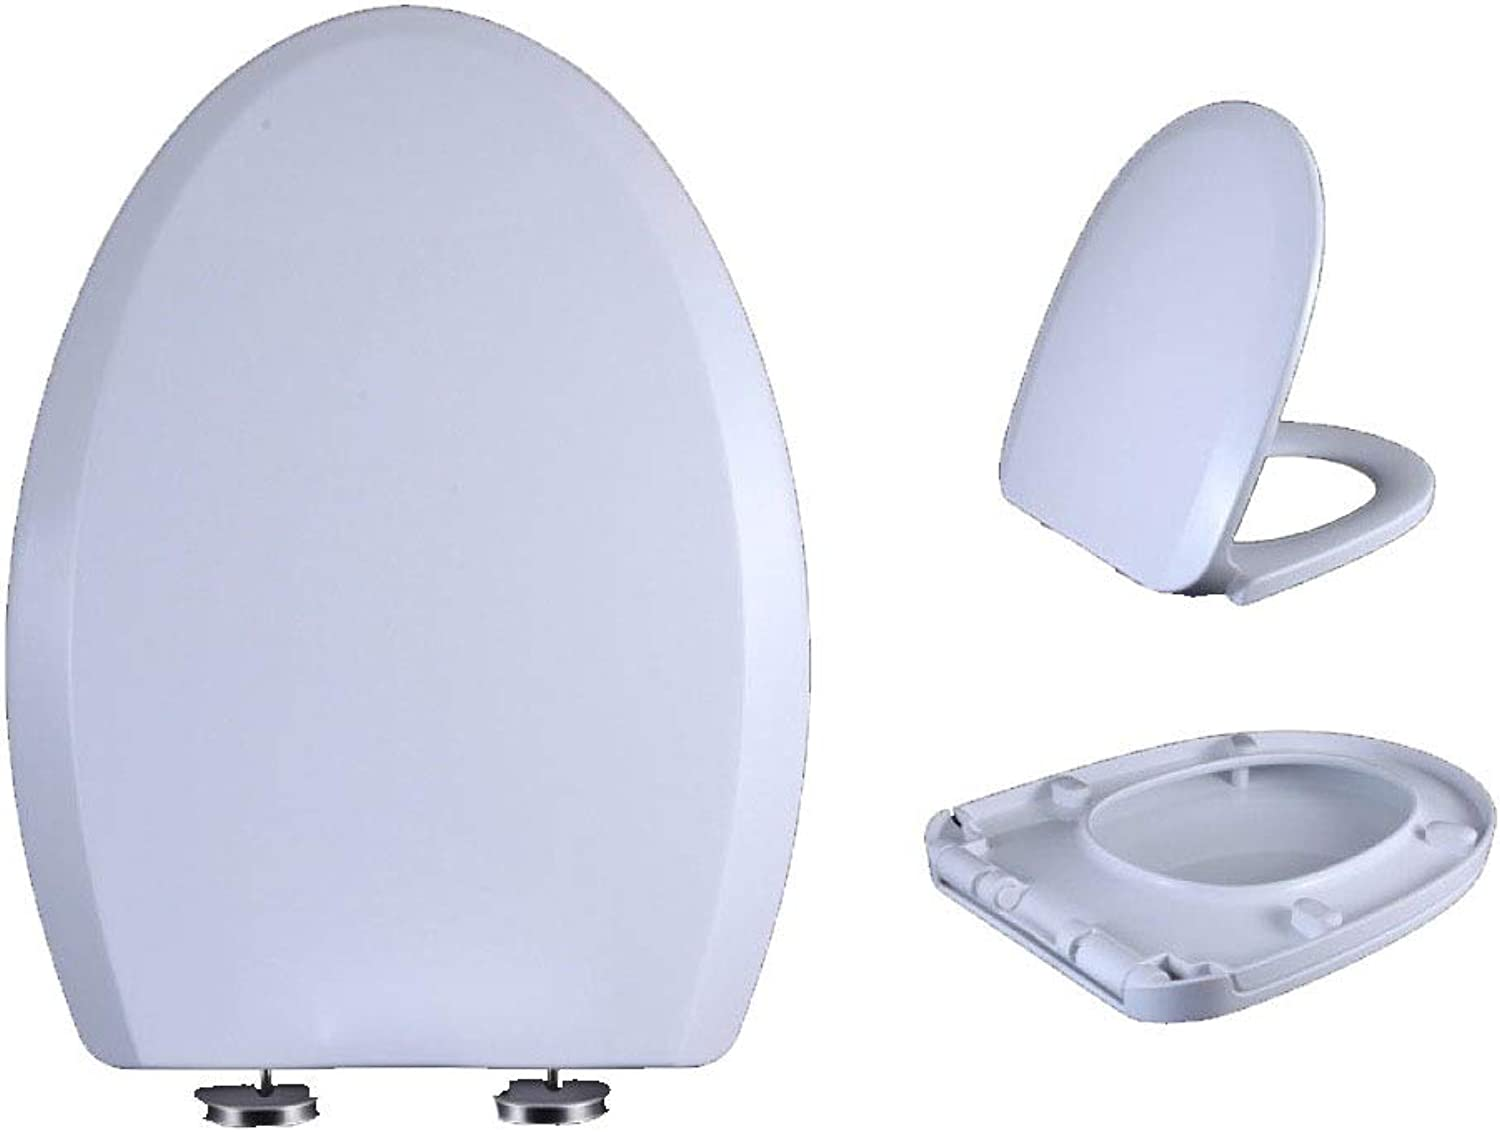 MMKJ White Toilet Seat, Soft Close Adjustable Hinge Quick Release Top Fixed Toilet Seat Cover Bathroom Lid Family Use,White40-45  34cm